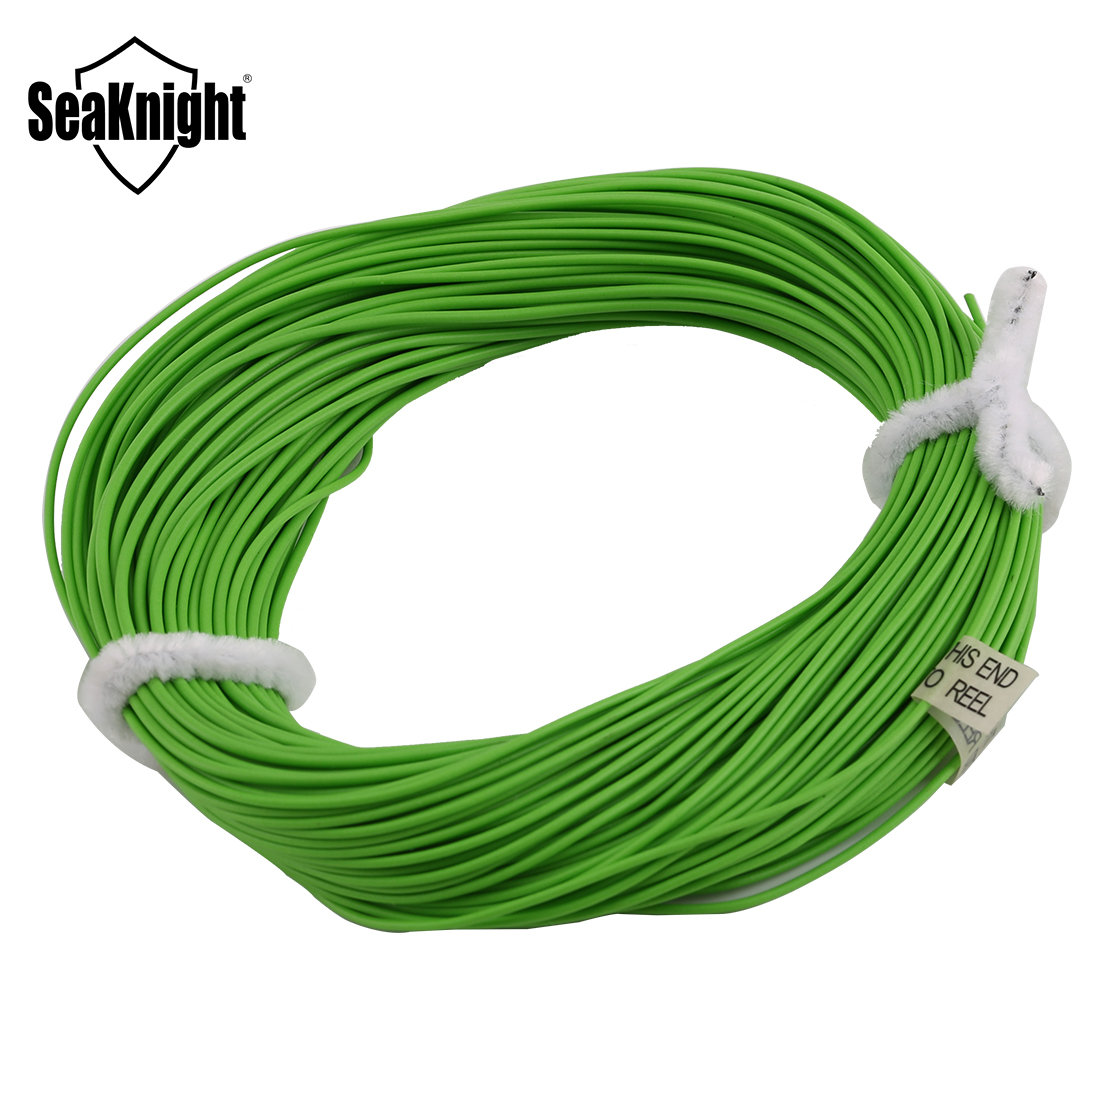 SeaKnight 30.5M 100FT Fly Fishing Line